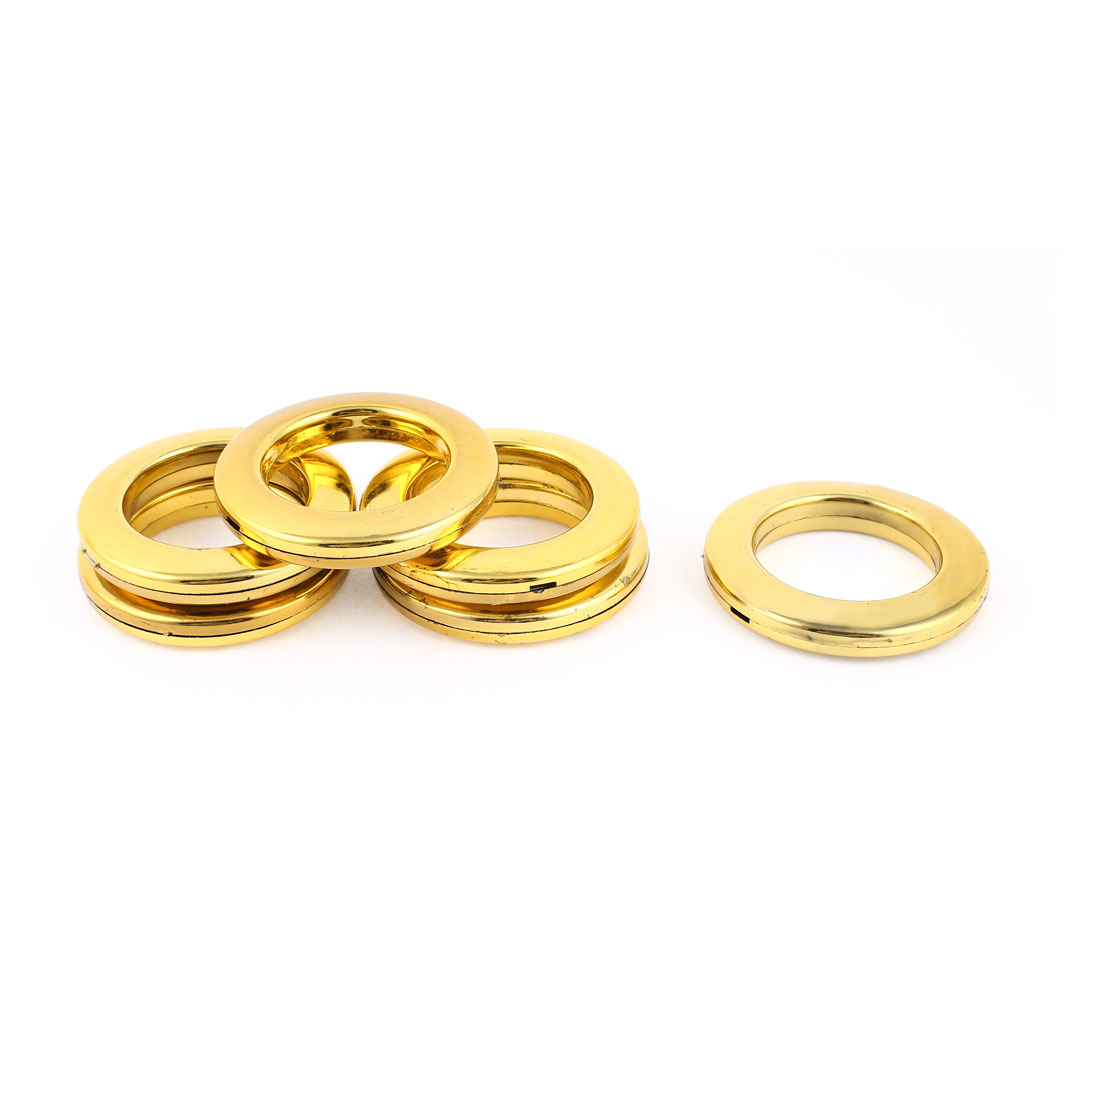 6 Pcs 41mm Inner Dia Gold Tone Plastic Window Curtain Rings